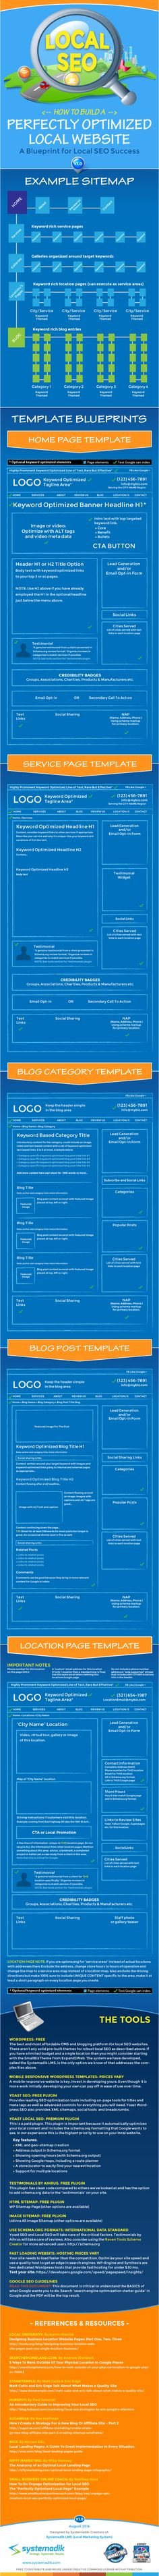 Local seo template blueprint infographic3 marketing your business malvernweather Choice Image